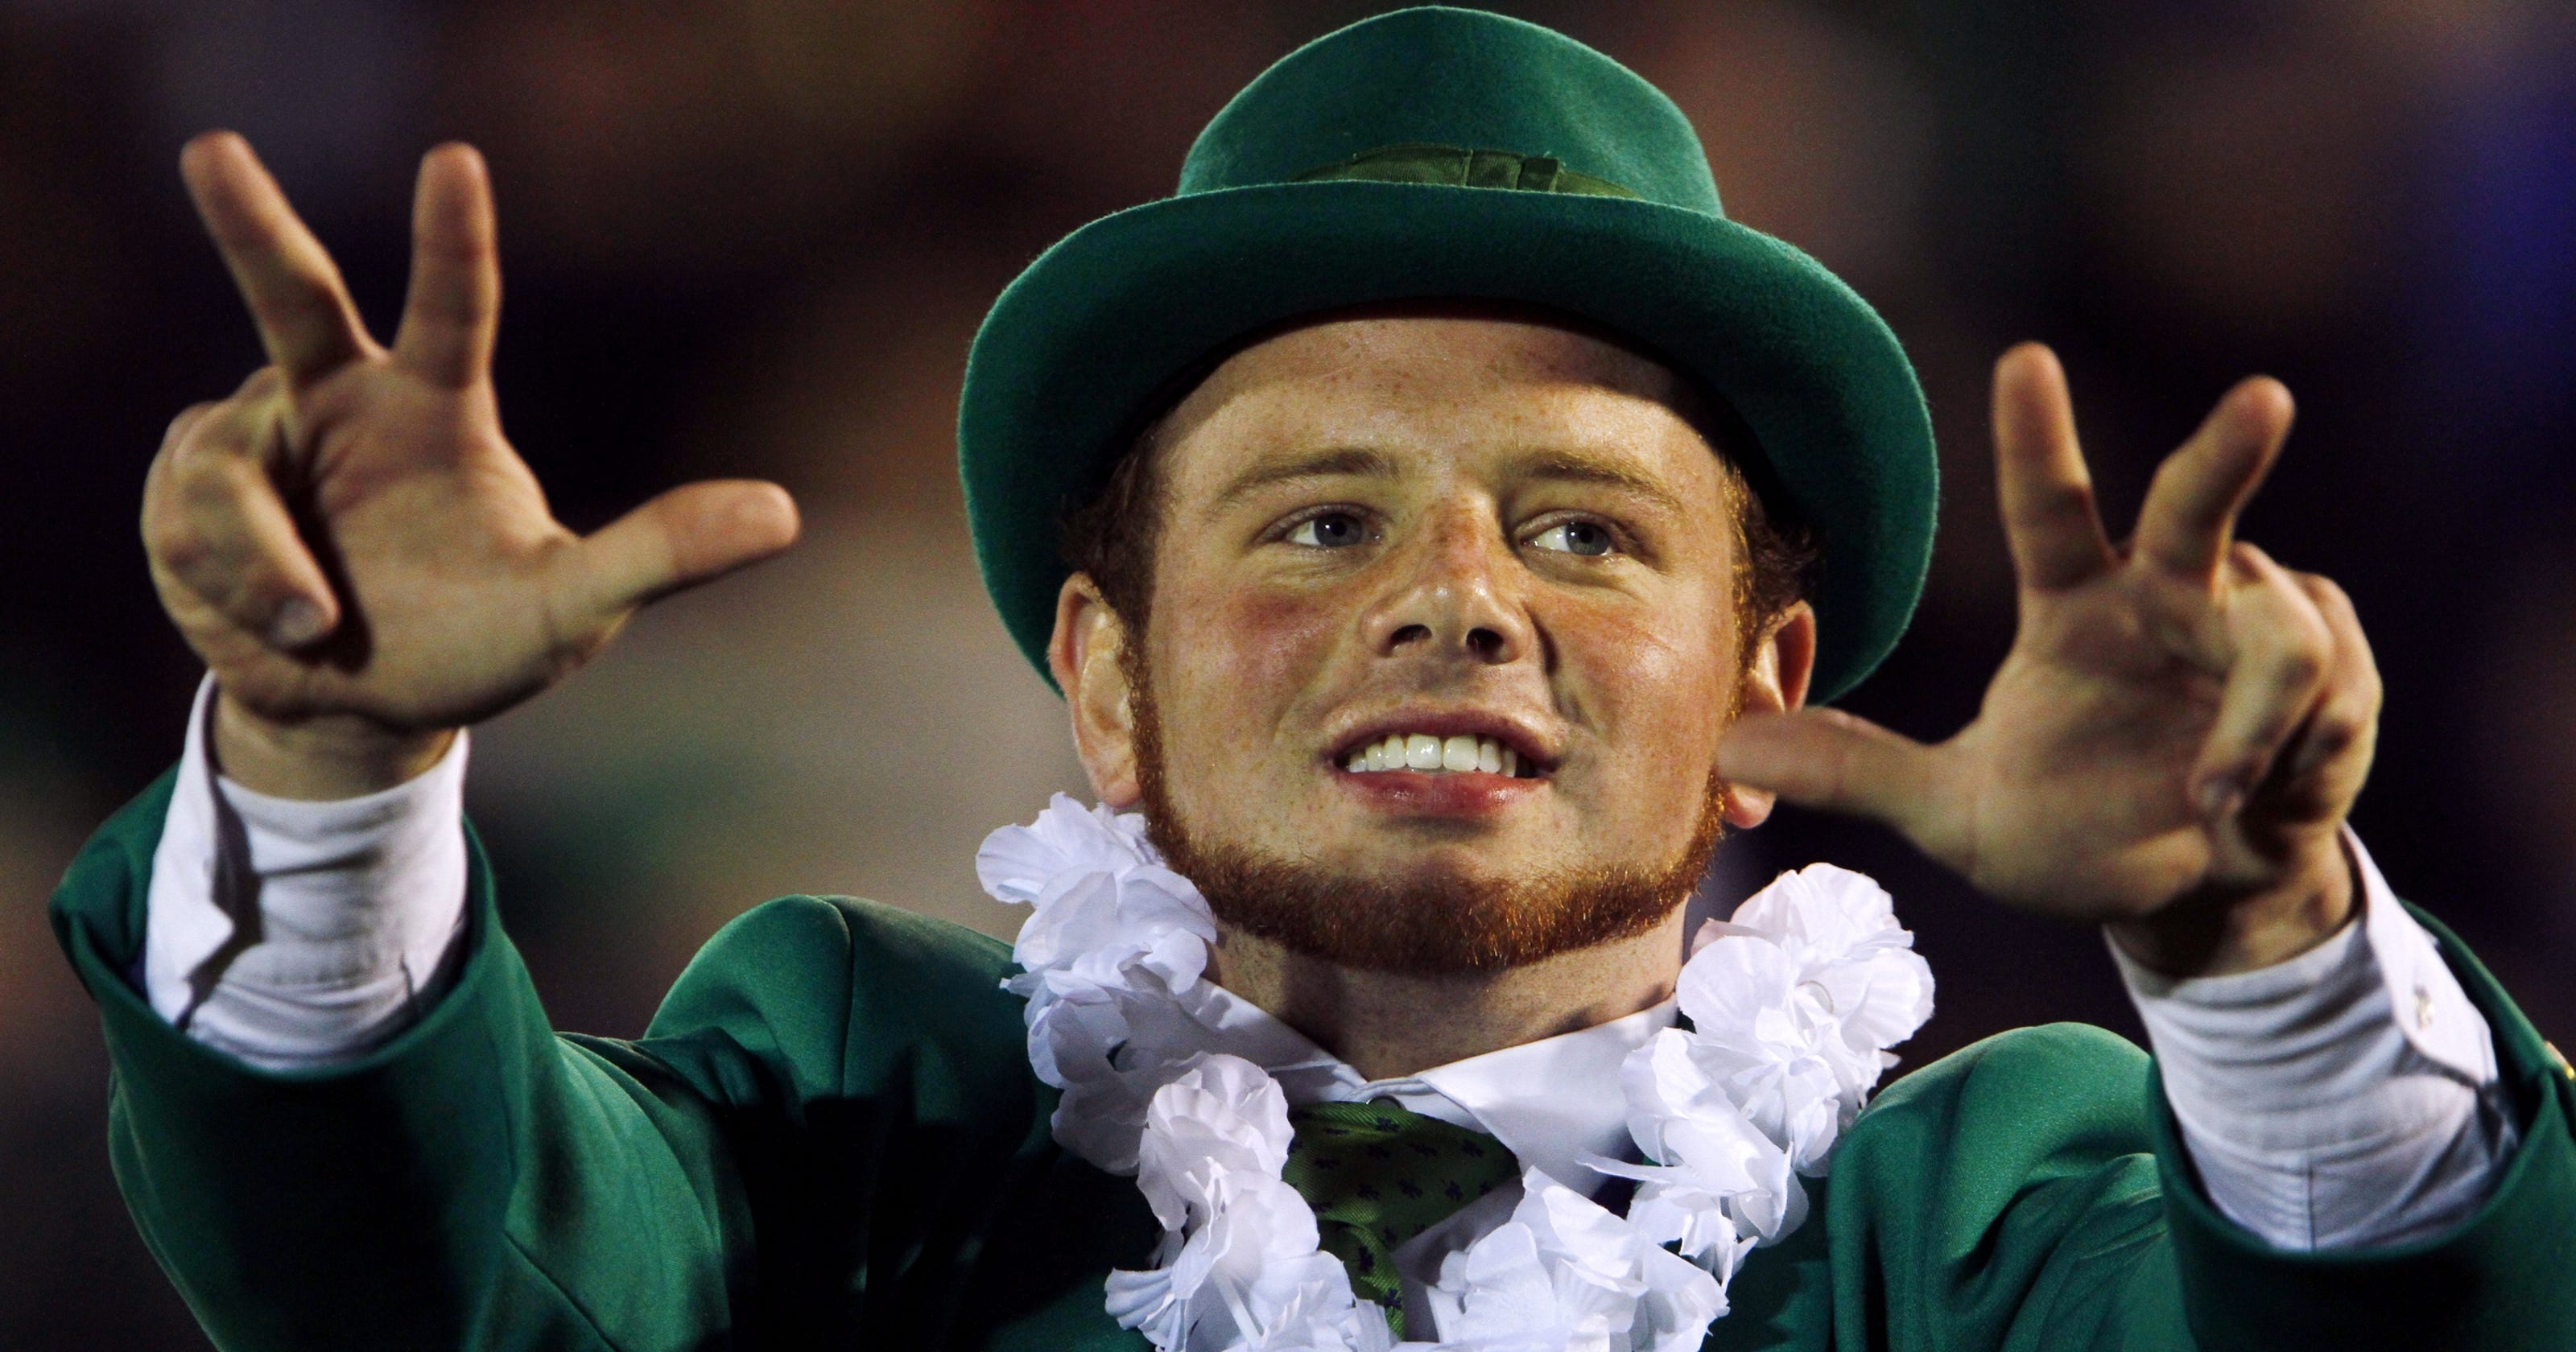 Notre Dame's mascot might be the biggest BCS celebrity